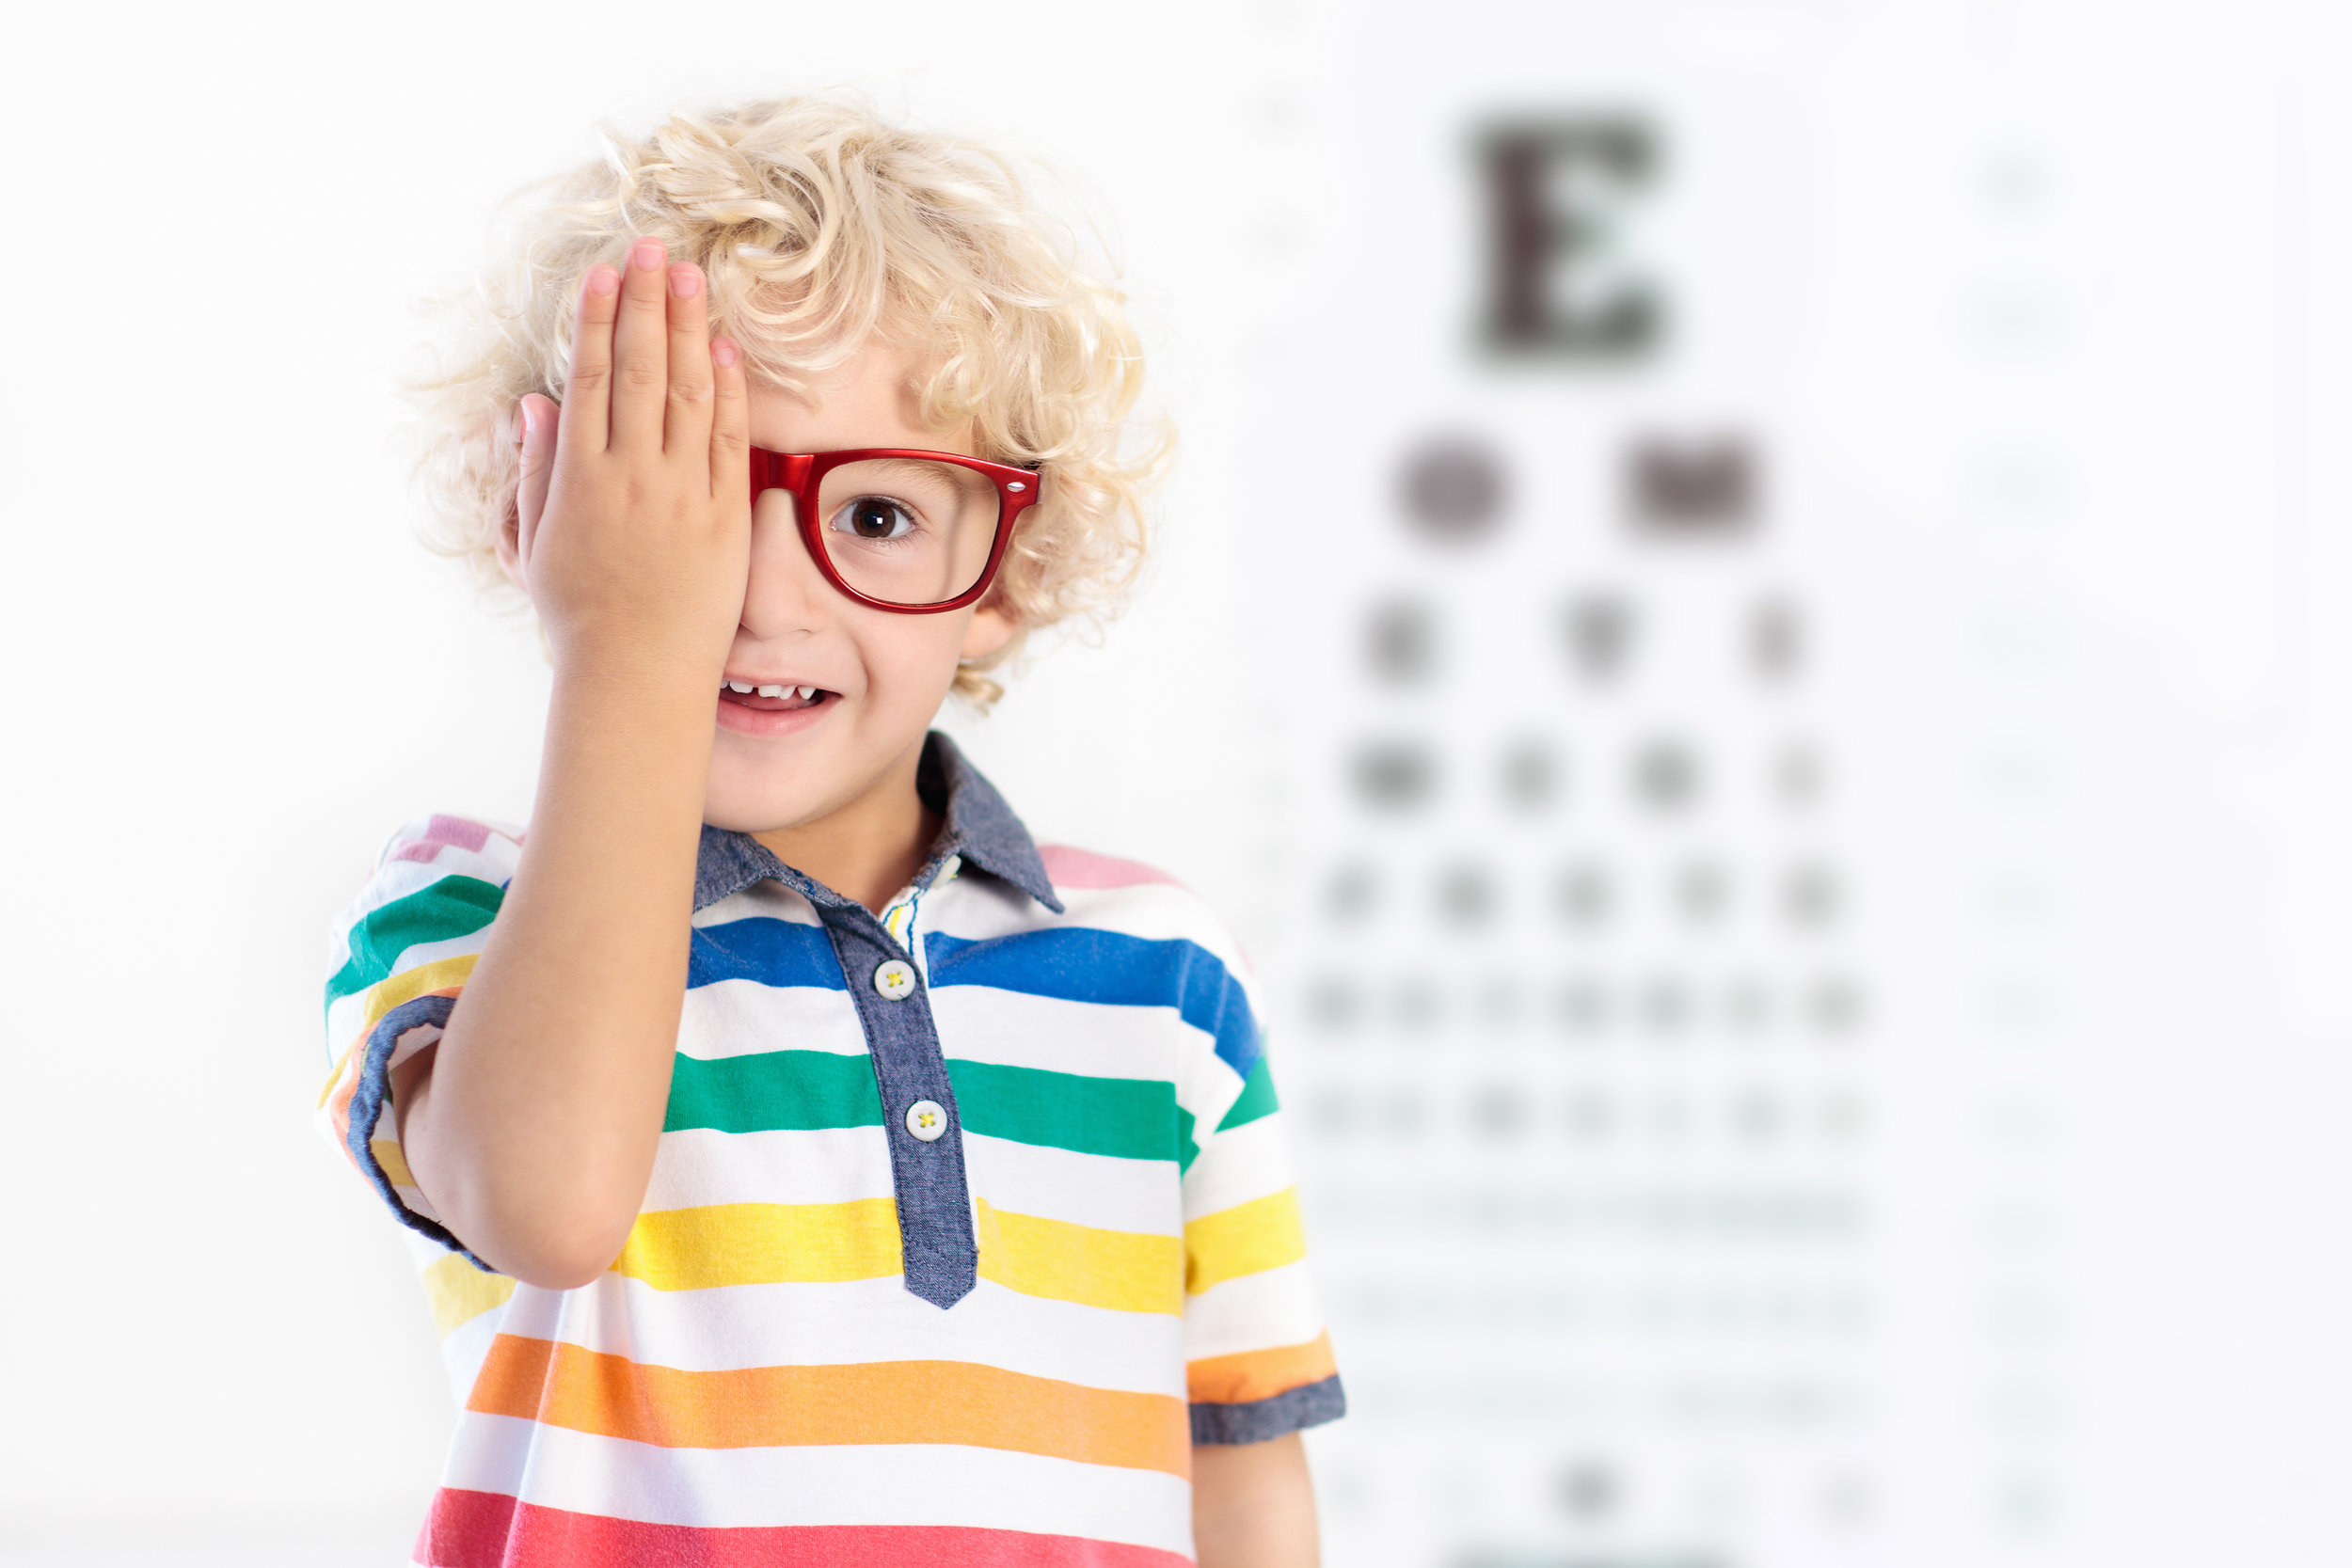 It can often be difficult to properly diagnose and treat children with vision issues. The thought of a first visit to a new doctor can also be a scary proposition to your little one! -